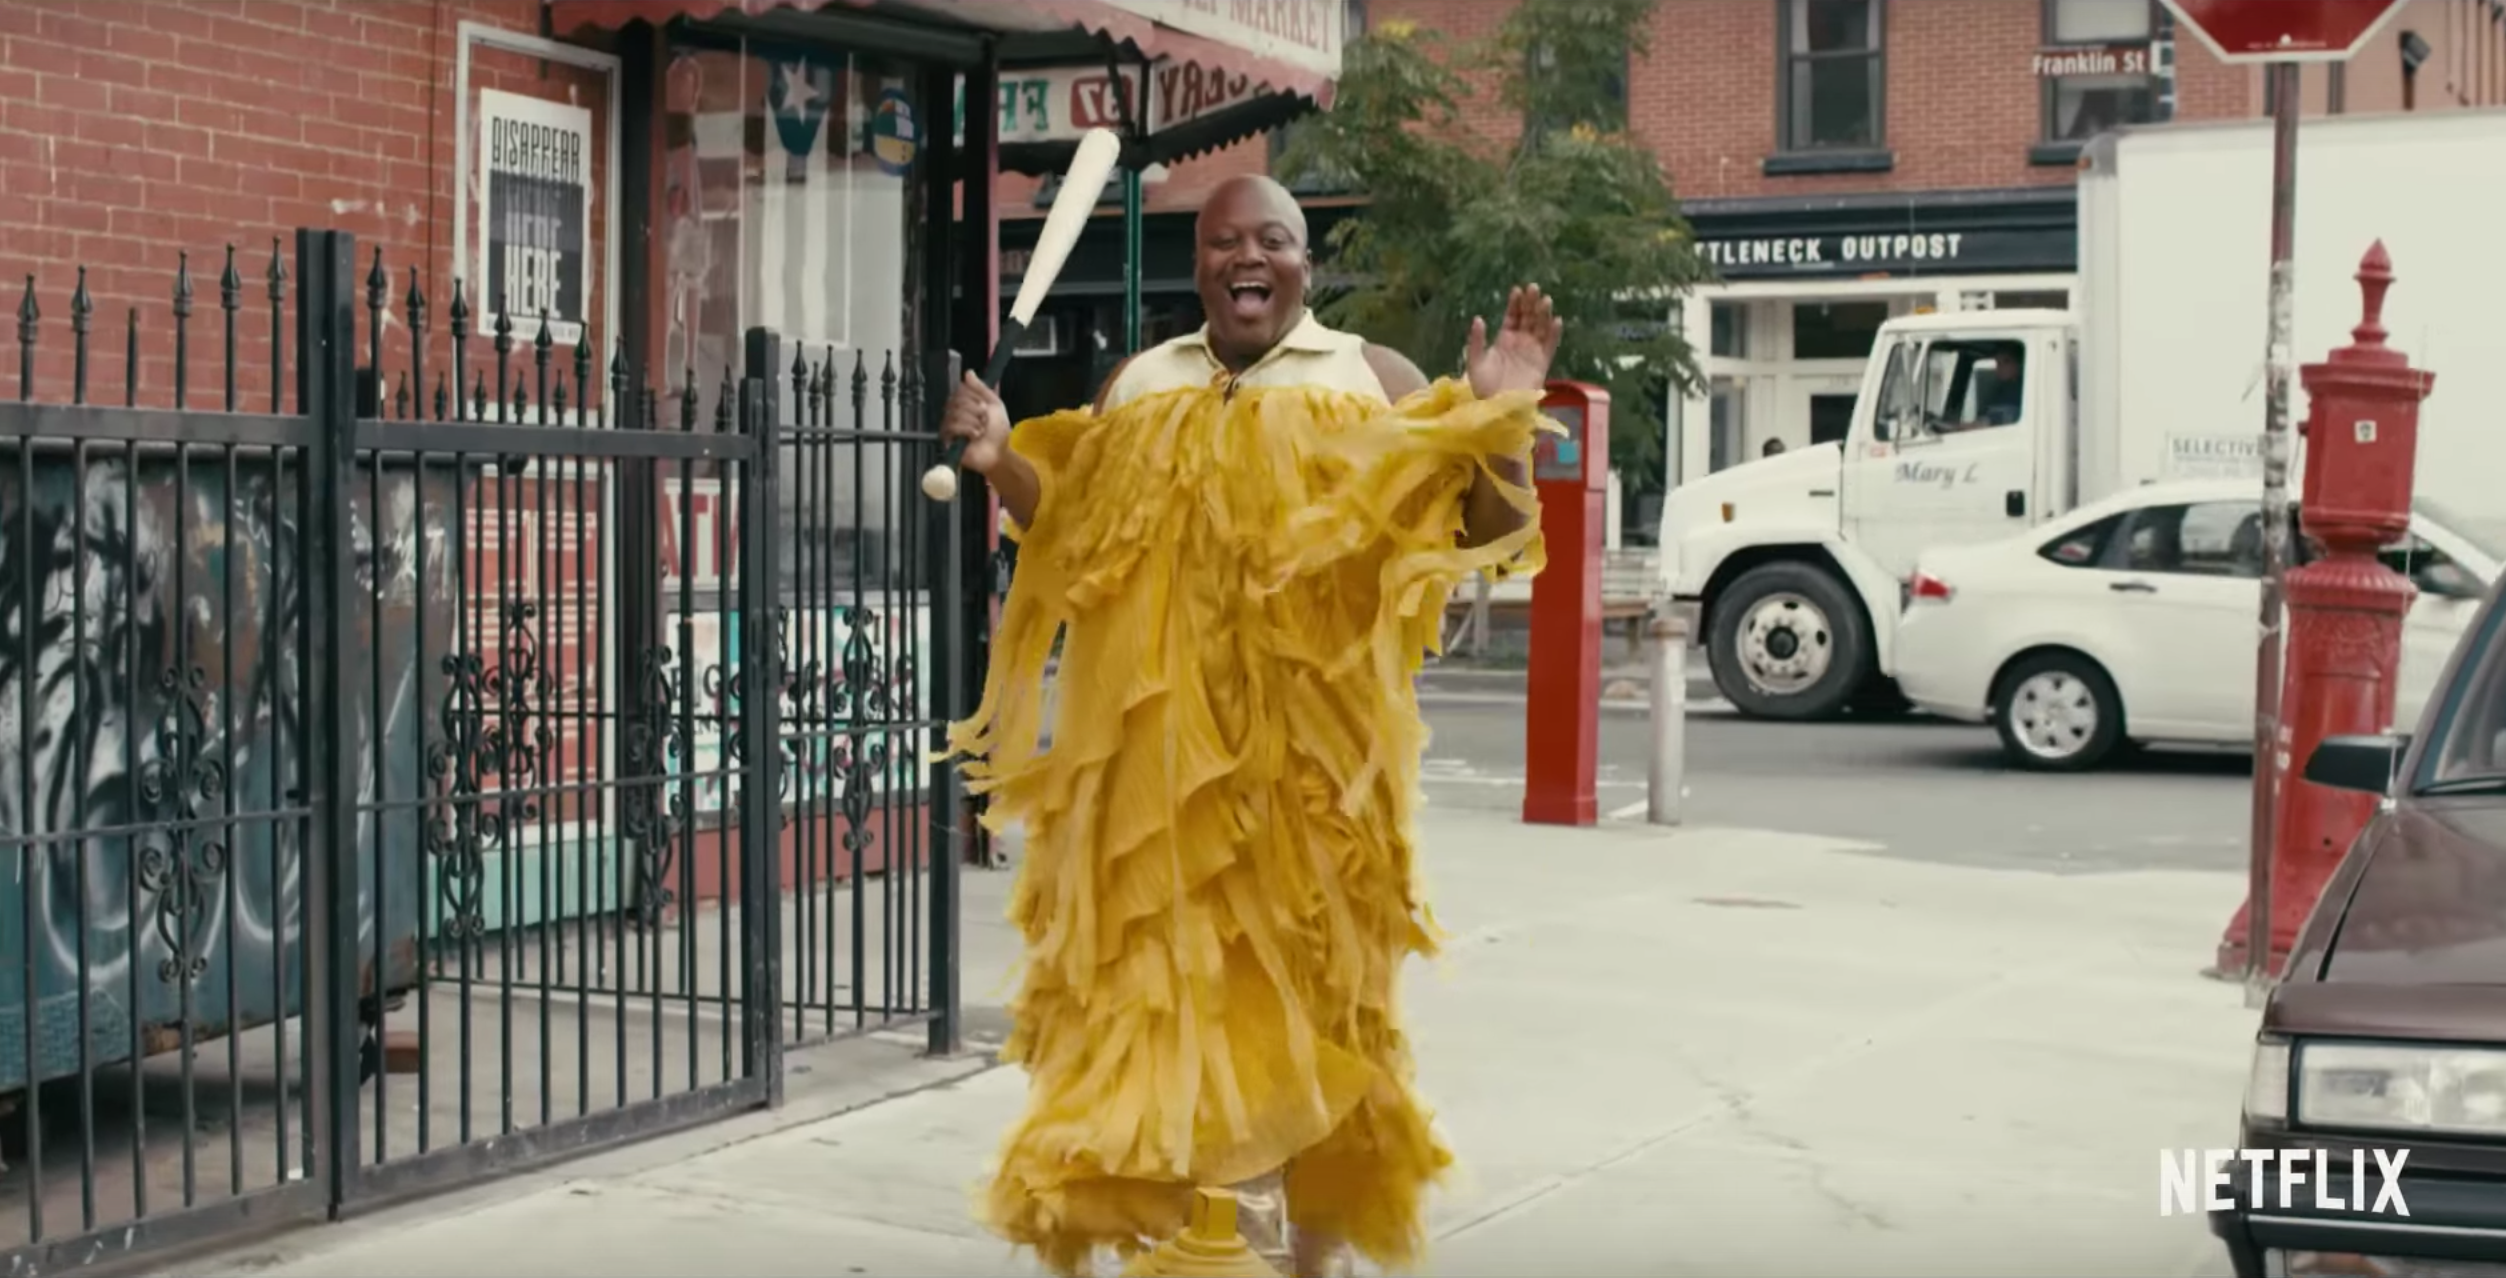 Fudge Yes Theres A New Trailer For Unbreakable Kimmy Schmidt